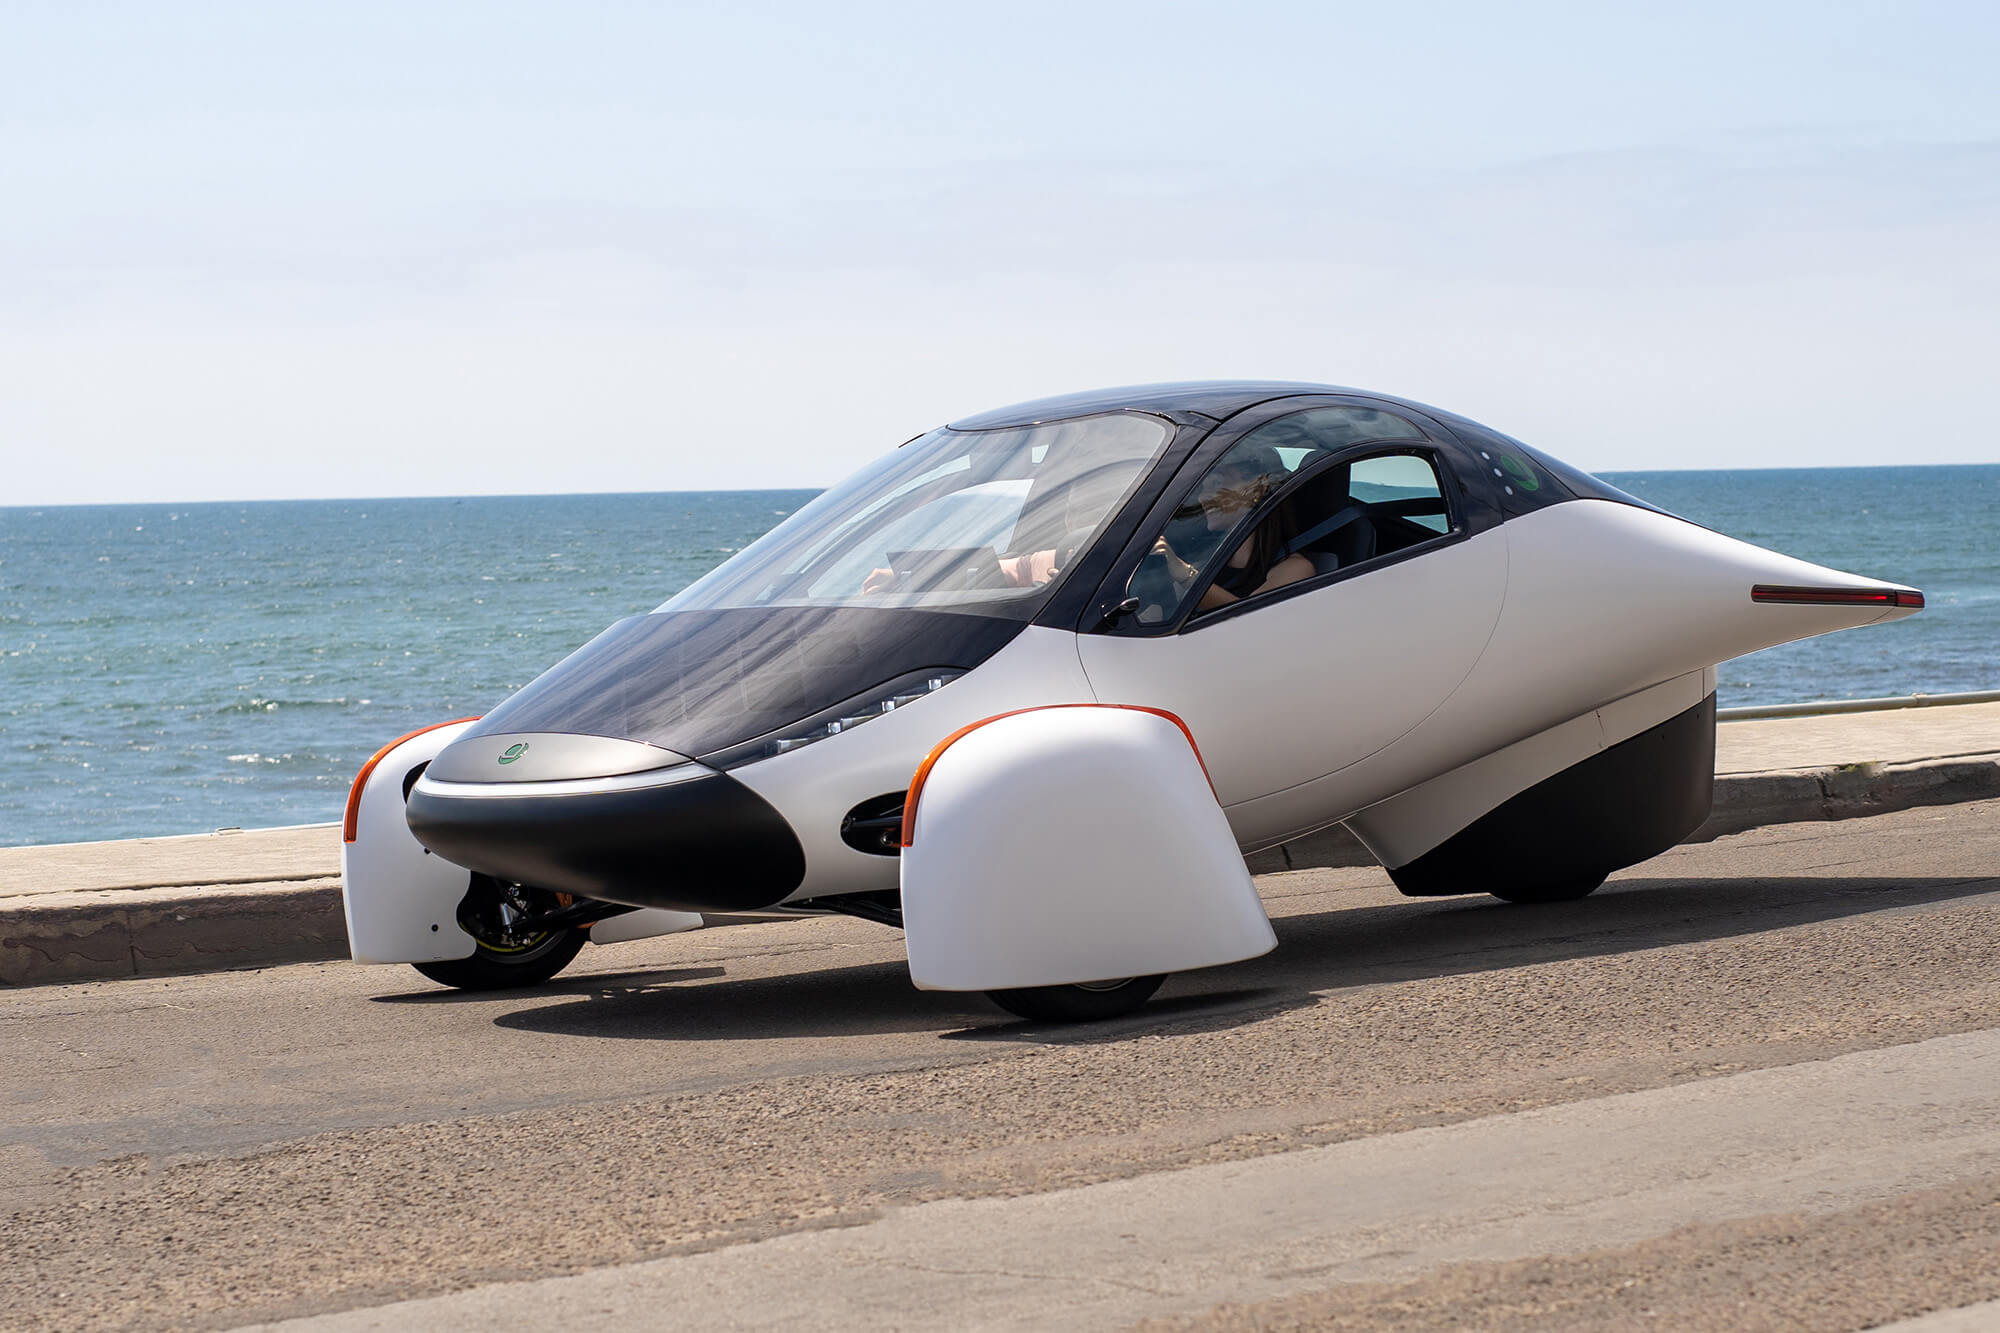 Aptera vehicle parked by the ocean